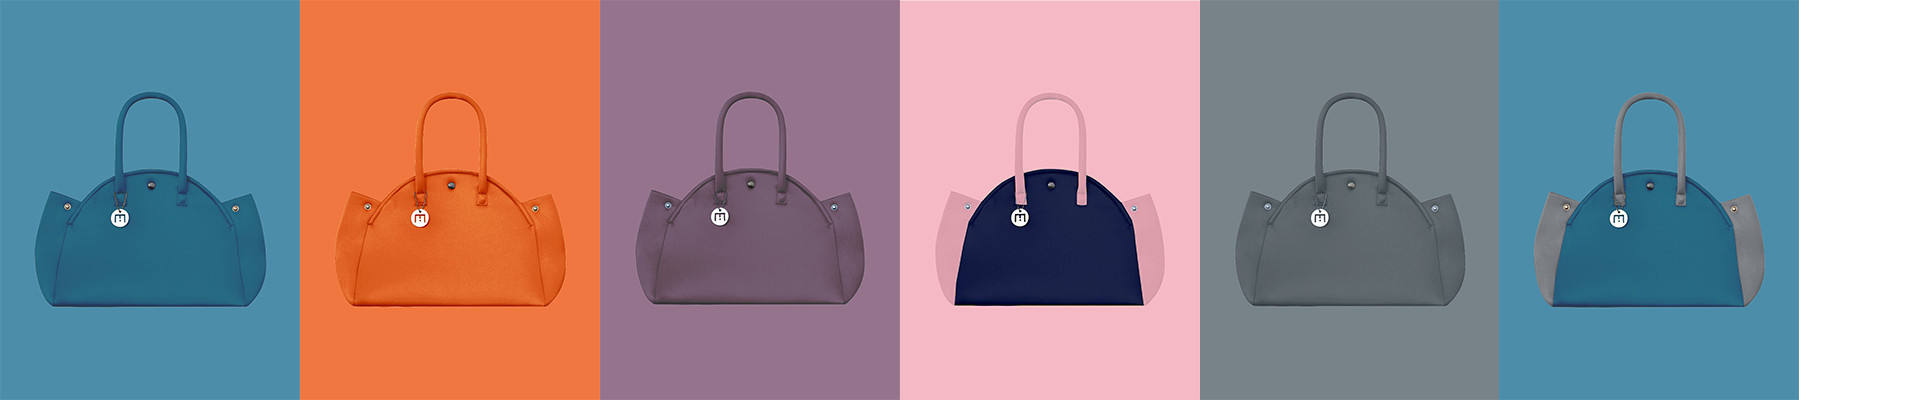 Neoprene-like foam Handbags L'Indomptable